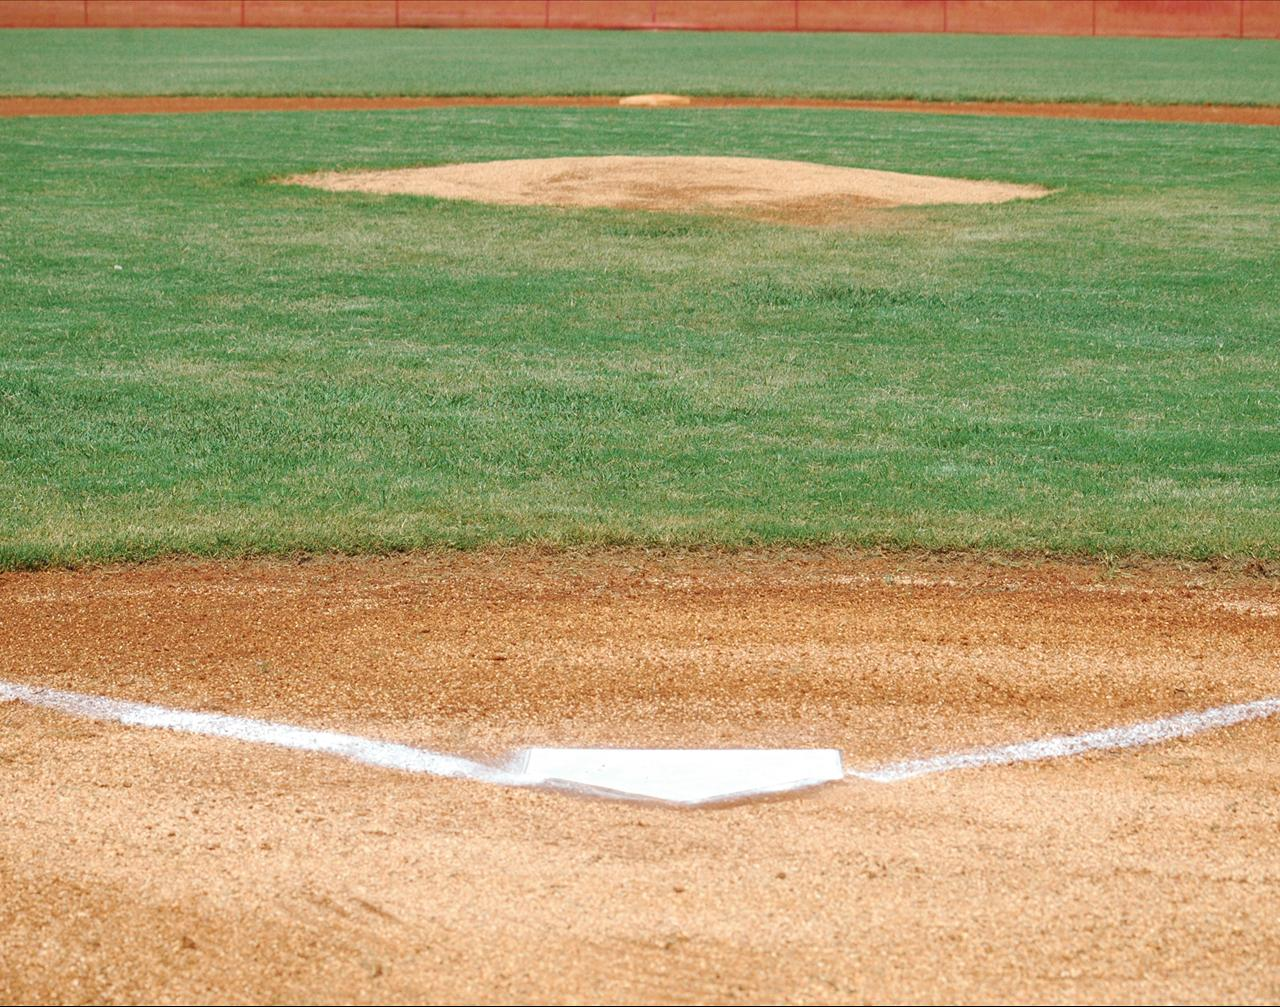 mlb baseball fields wallpaper - photo #41